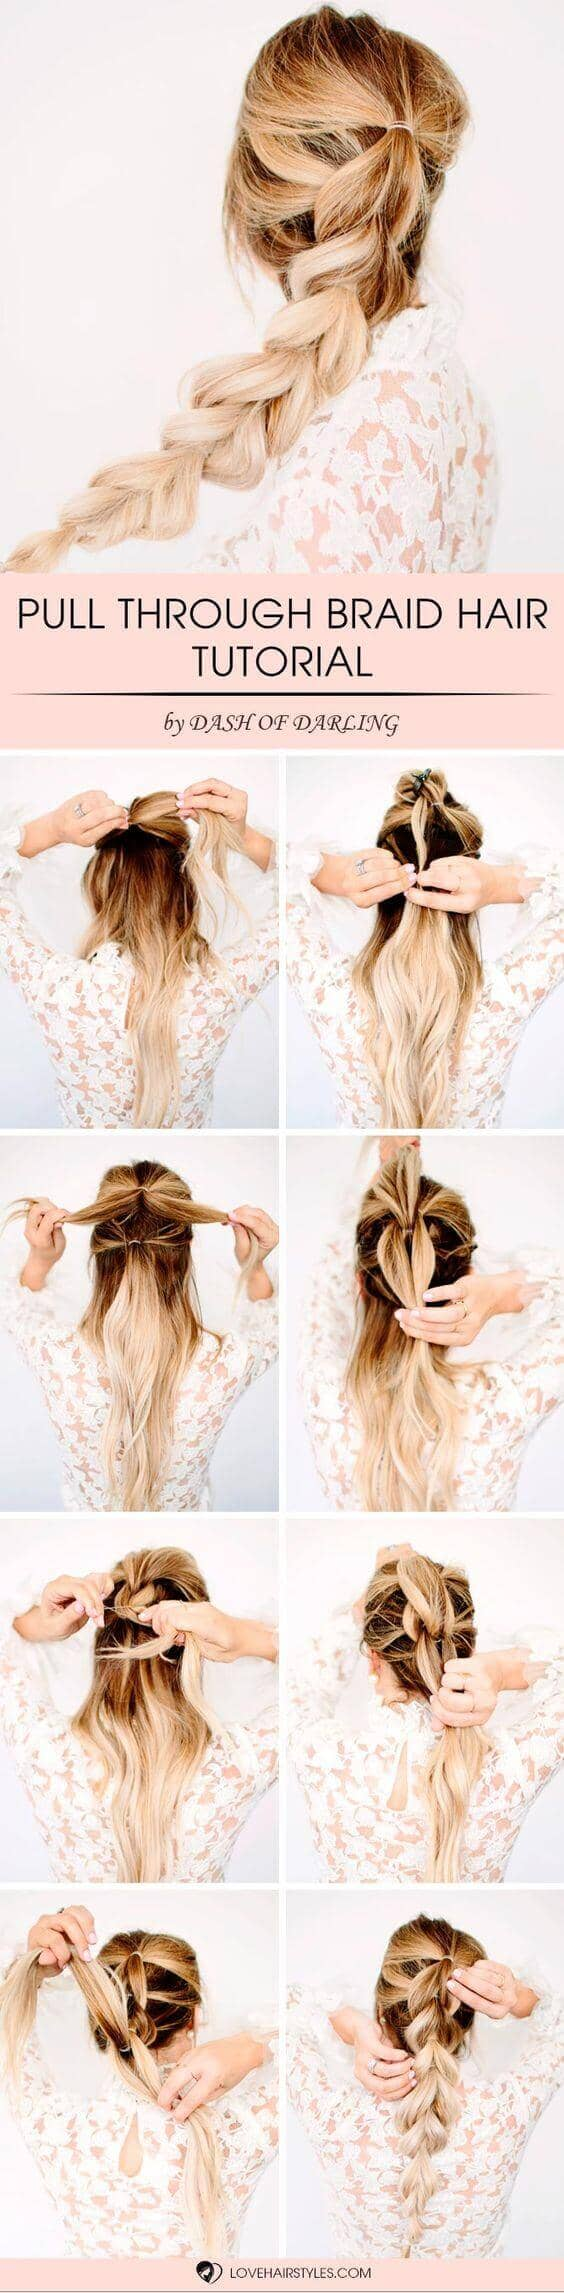 Long, Beachy Pull-through Braid